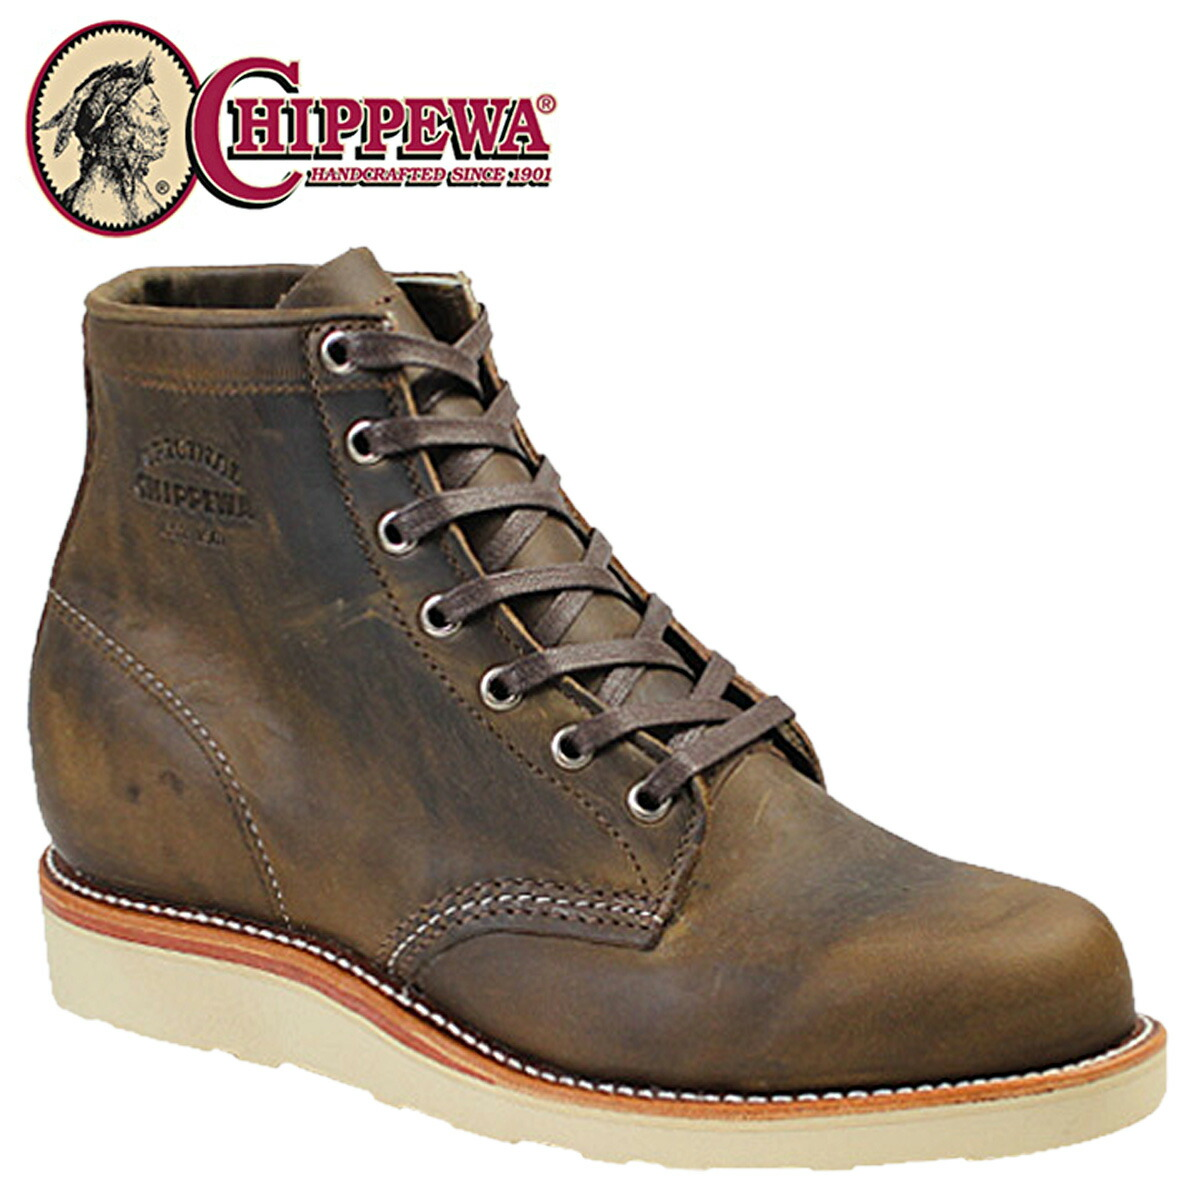 5638b61b192b1 Point 2 x Chippewa CHIPPEWA 6 inch plain to wedge boots 1901M18 6INCH PLAIN  TOE WEDGE D wise leather mens BOOTS 02P13Dec13 m